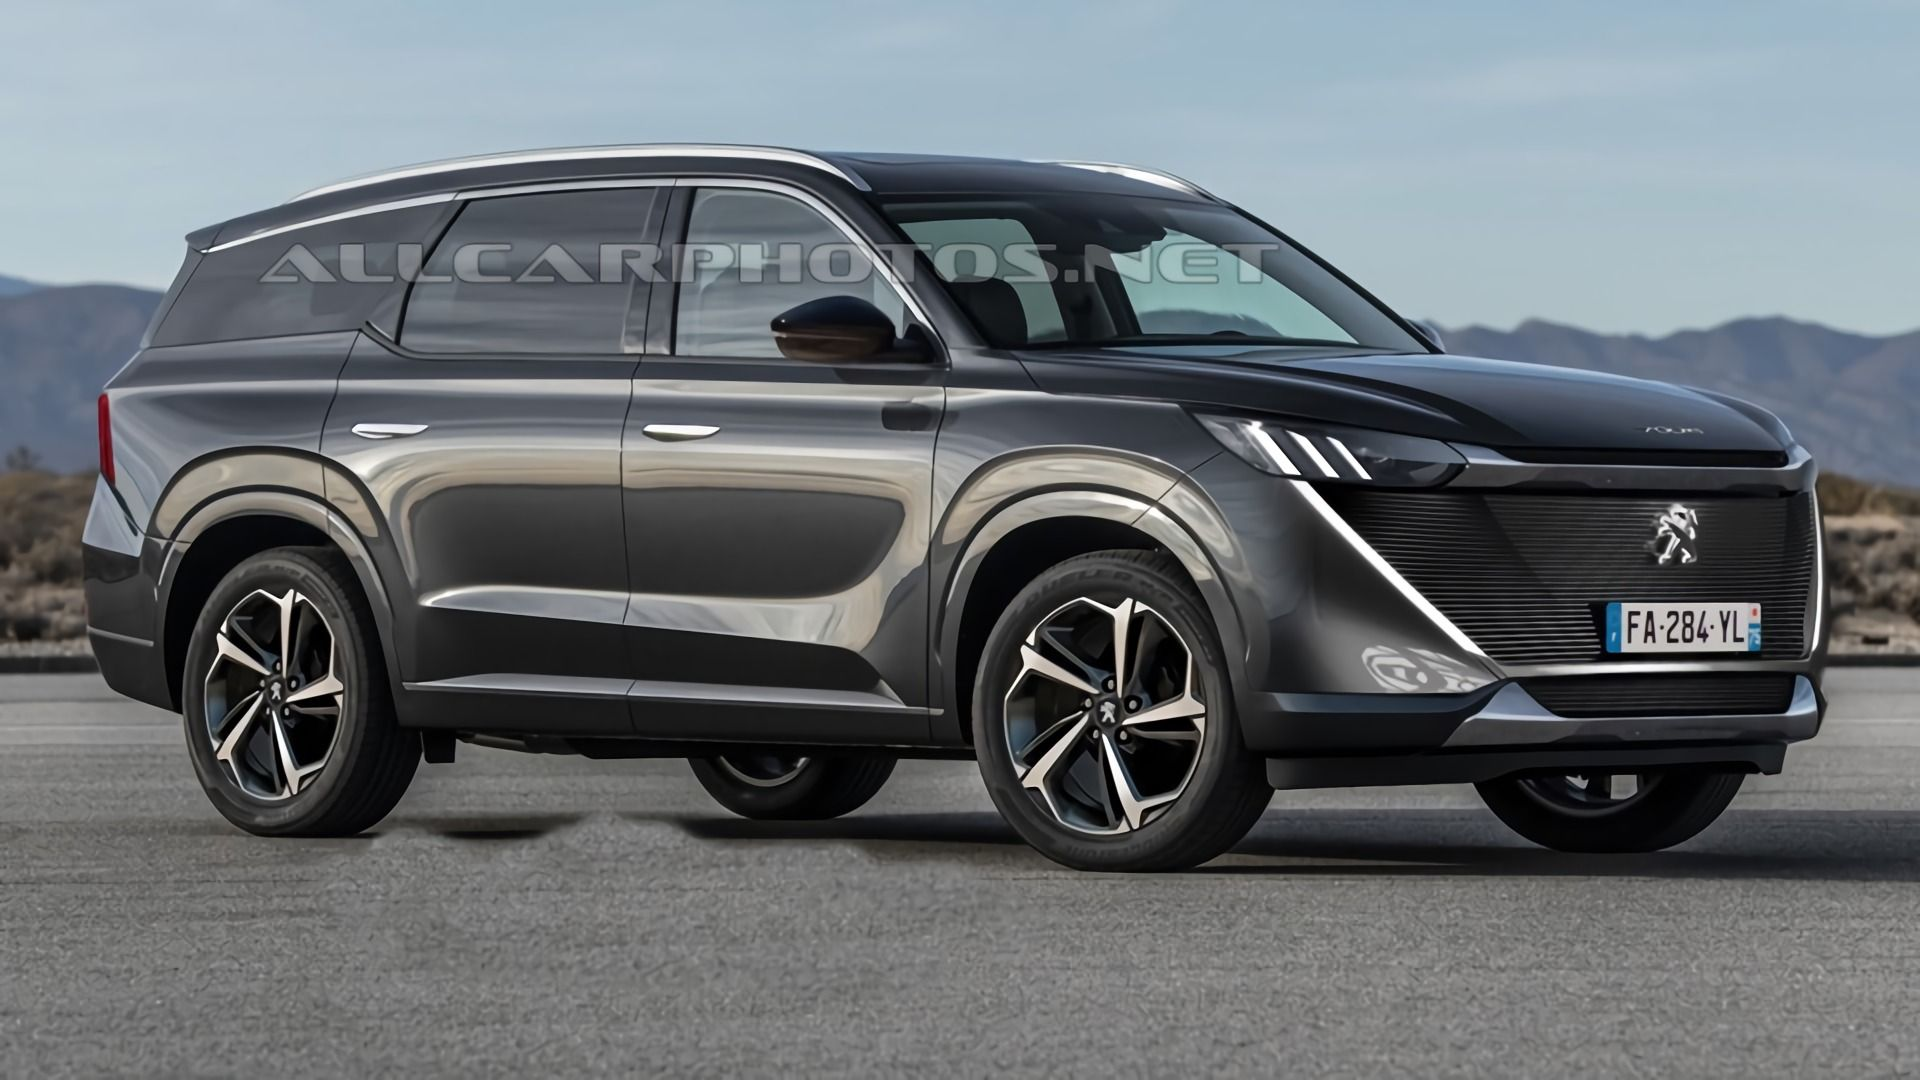 Bild von Peugeot 7008: A large SUV coupe in preparation